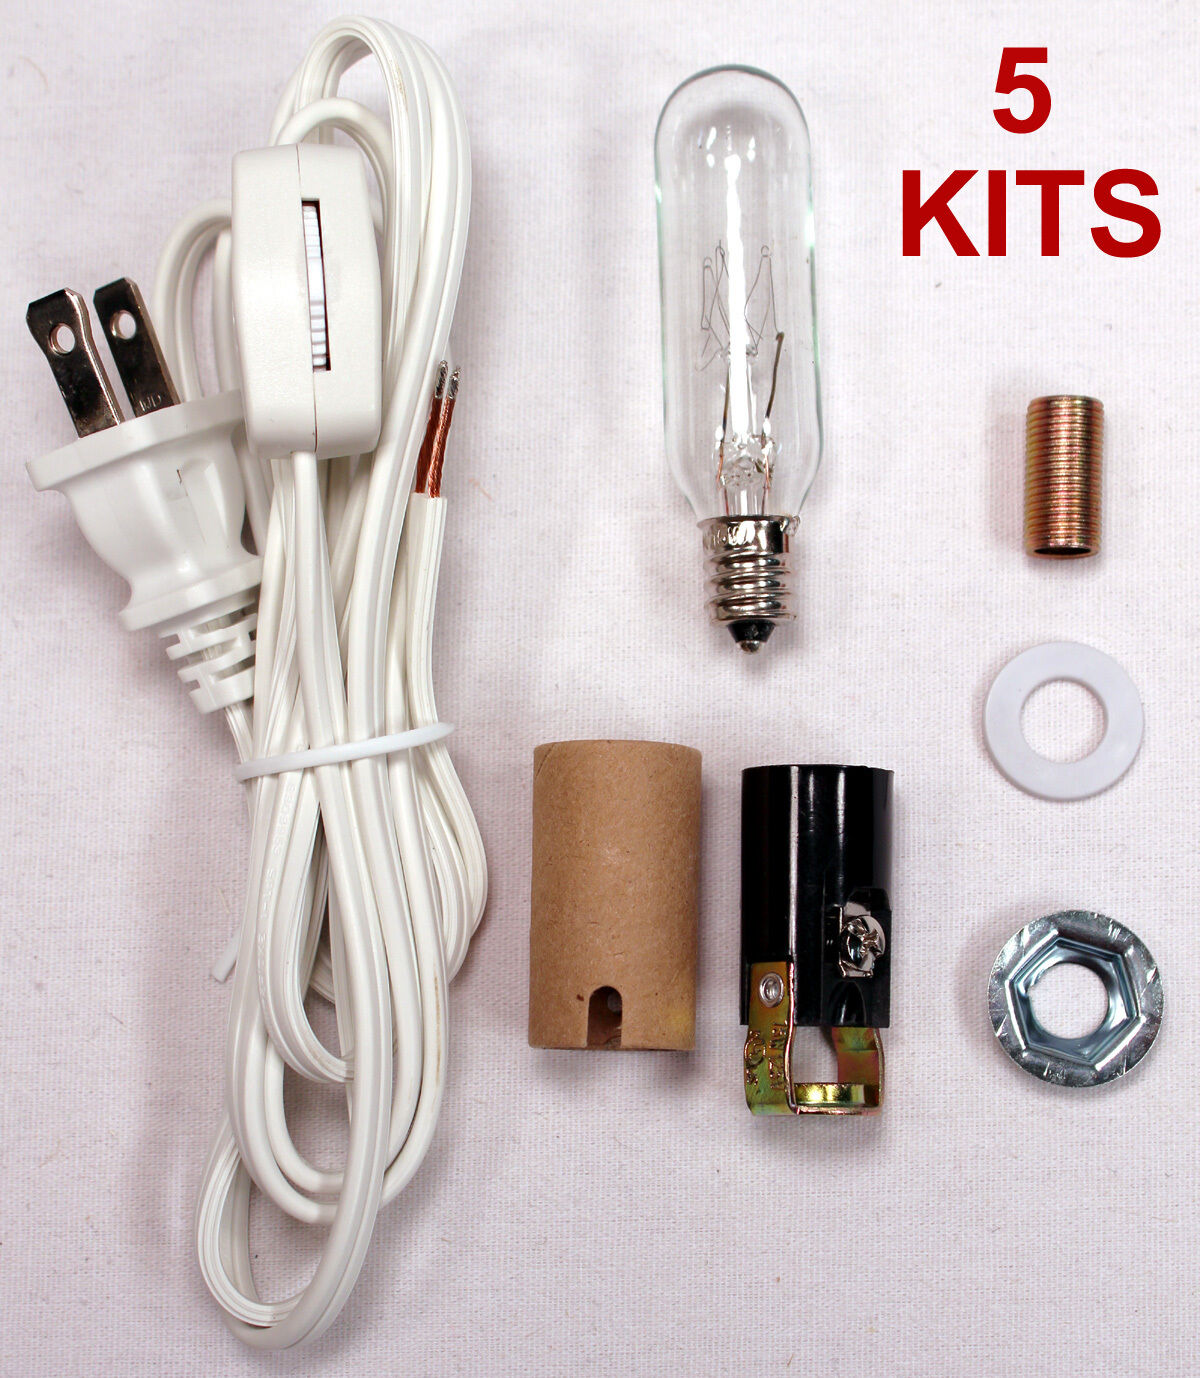 Lot of 5 -Medium Christmas Tree Wiring Kits ML2-15B6, For Lighting Small Objects Collectibles